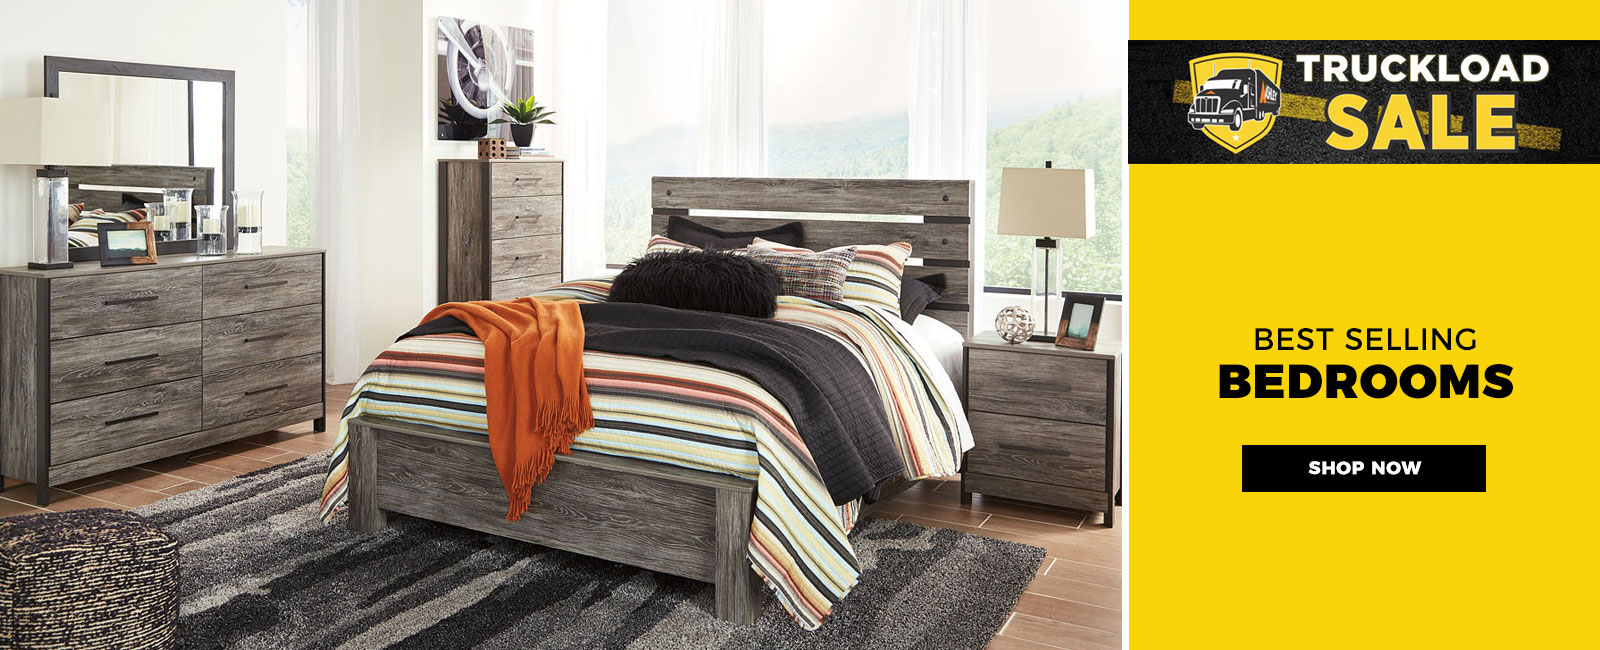 Shop Best Selling Bedrooms